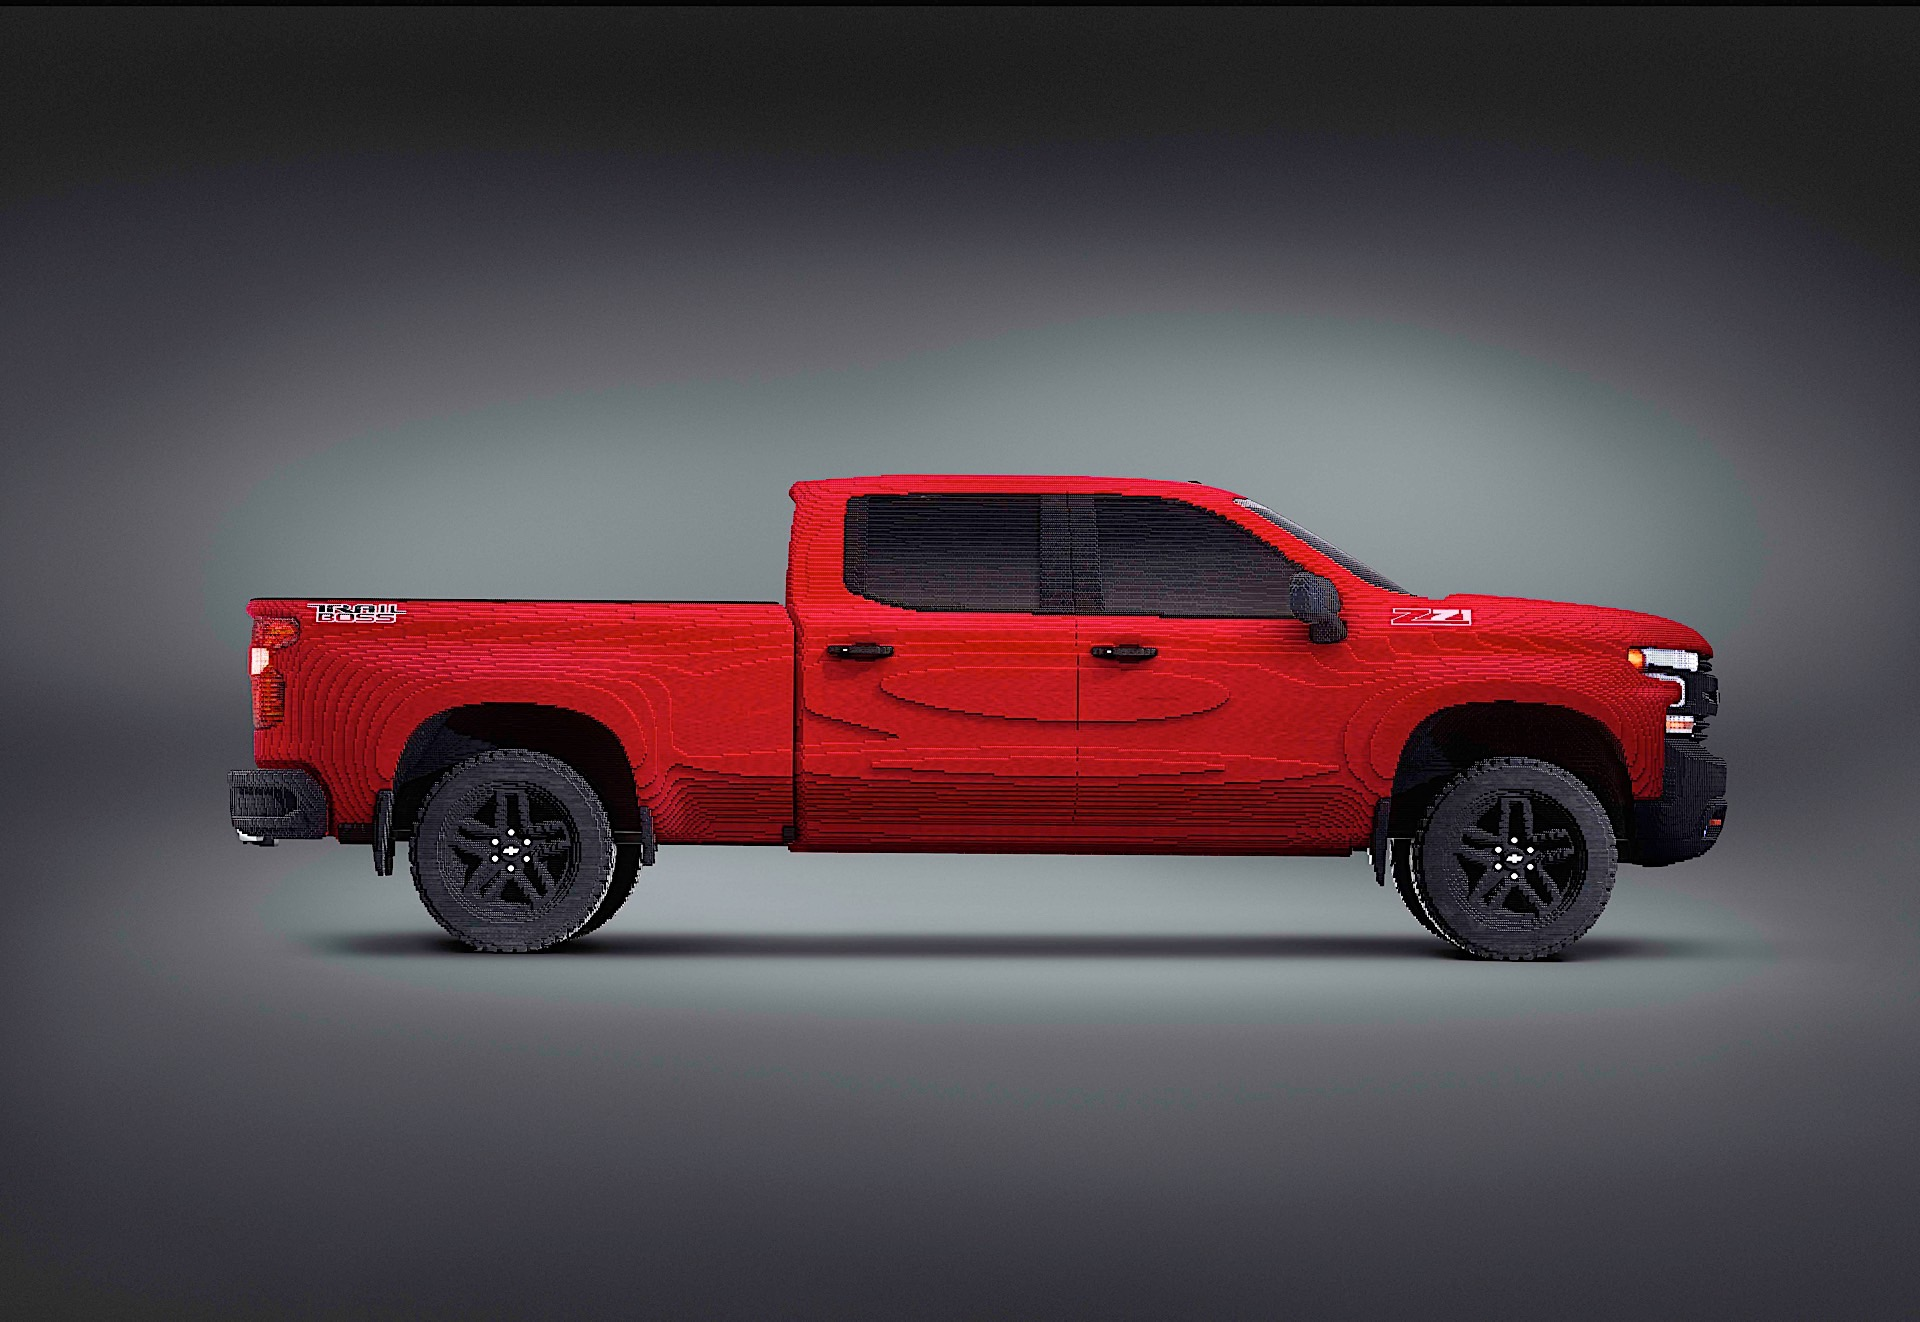 Chevy unveils full-sized Lego replica of its Silverado truck